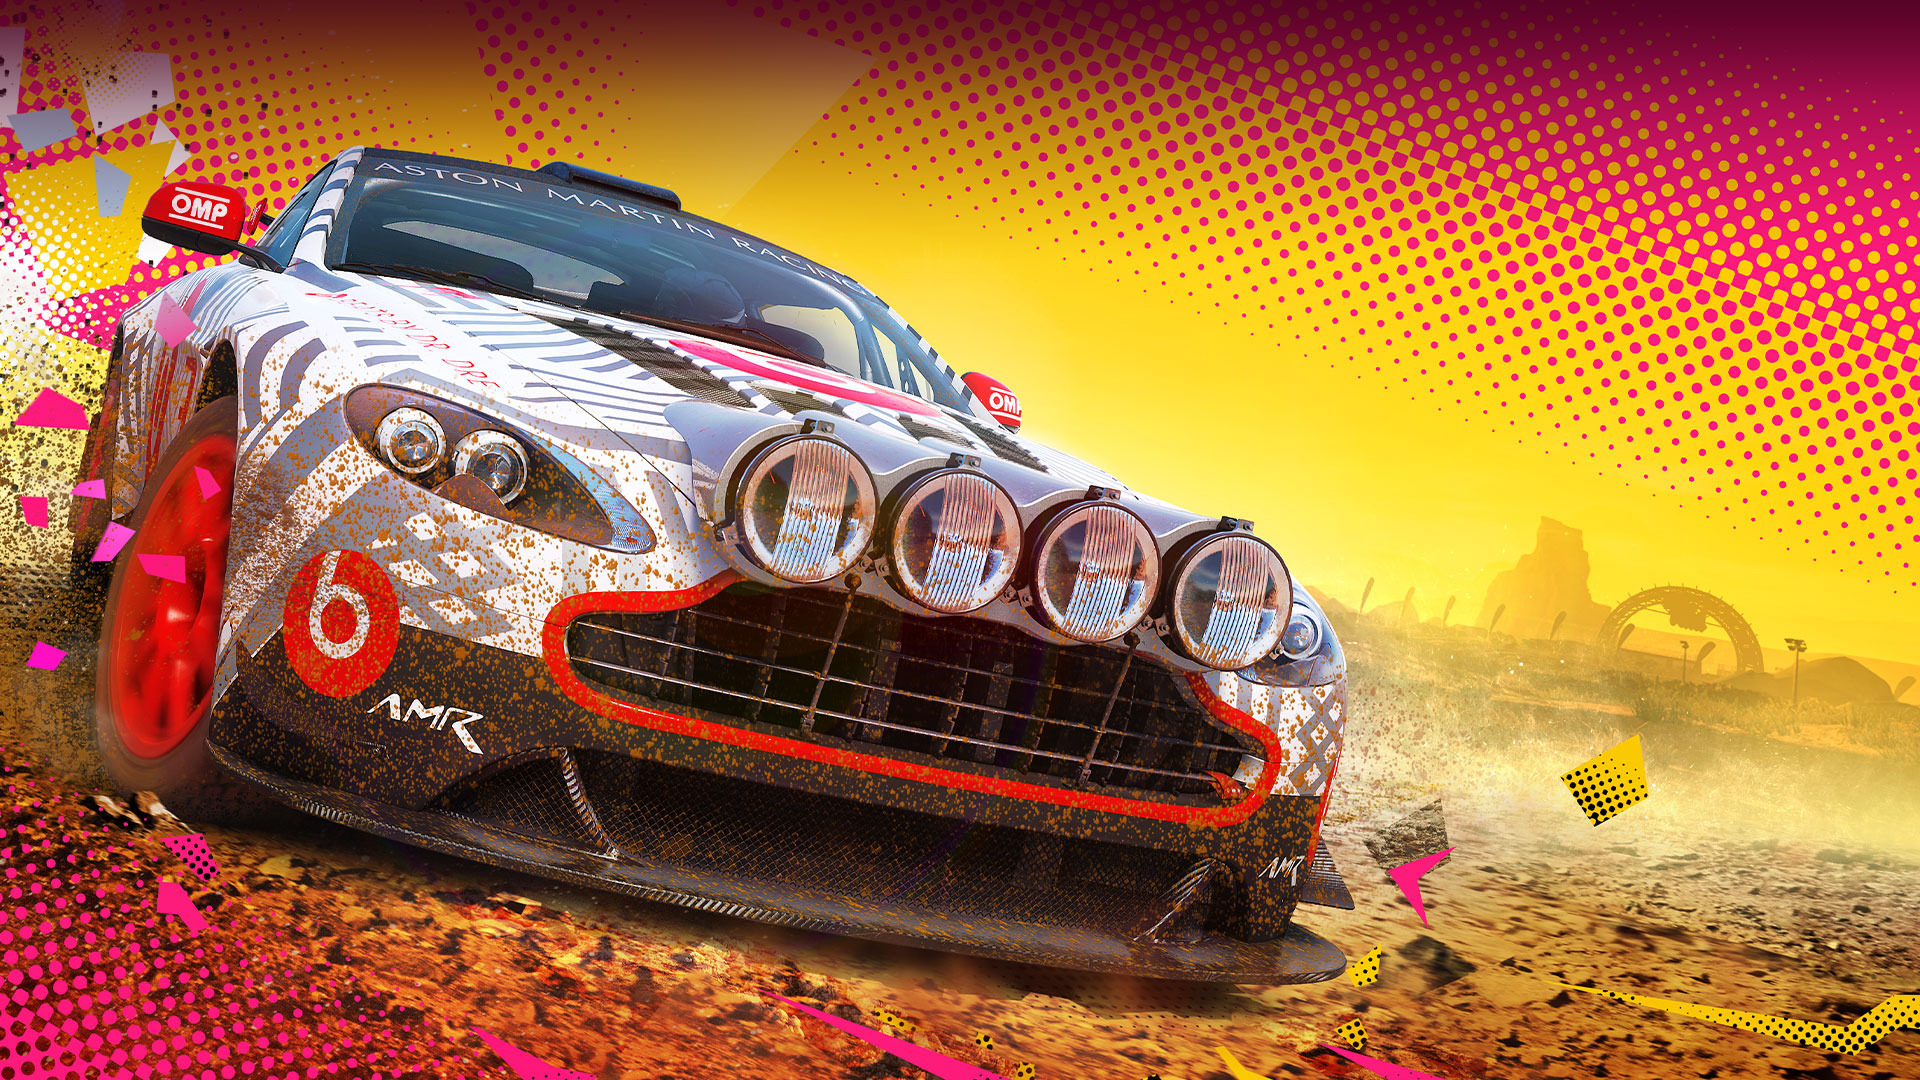 Car in mud with yellow and pink background